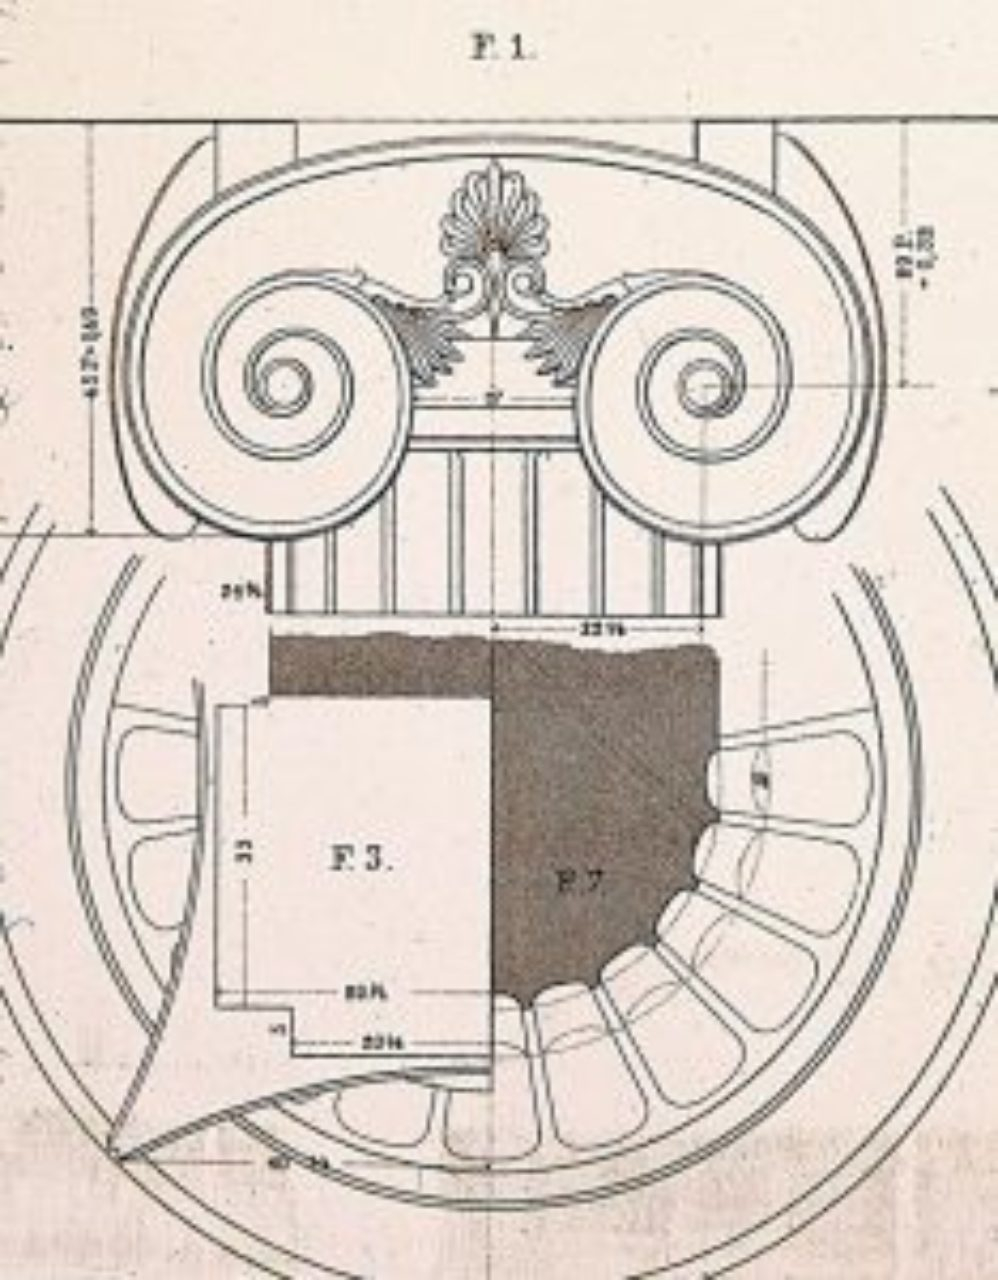 Figure 20: Temple of Apollo Epicurius, Ionic capital detail (von Mauch & Normand, Parallel of the Classical Orders of Architecture, Acanthus Press reprint, 1998, plate 33)